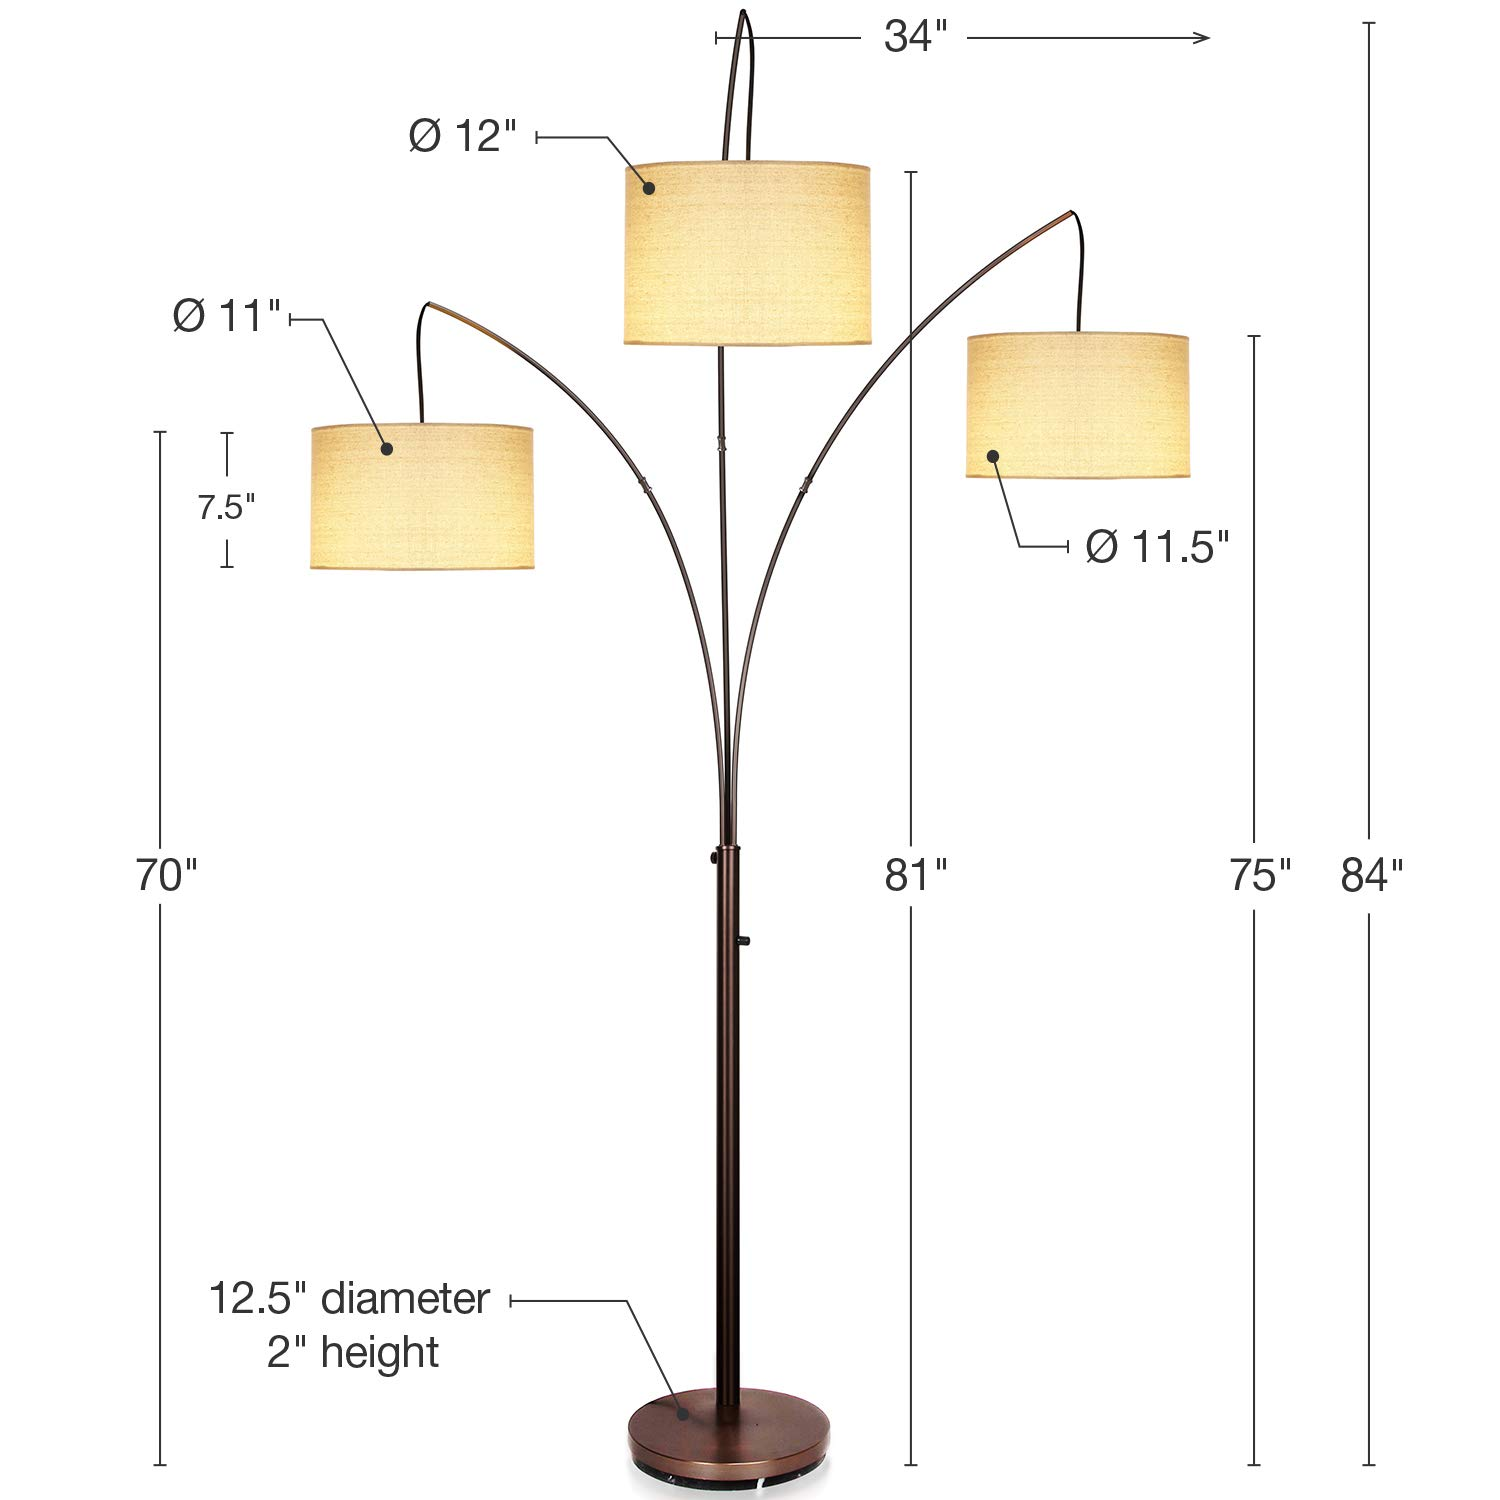 Brightech Trilage - Modern LED Arc Floor Lamp with Marble Base - Free Standing Behind The Couch Lamp for Living Room - 3 Hanging Lights, Great for Reading - Oil Rubbed Bronze by Brightech (Image #3)